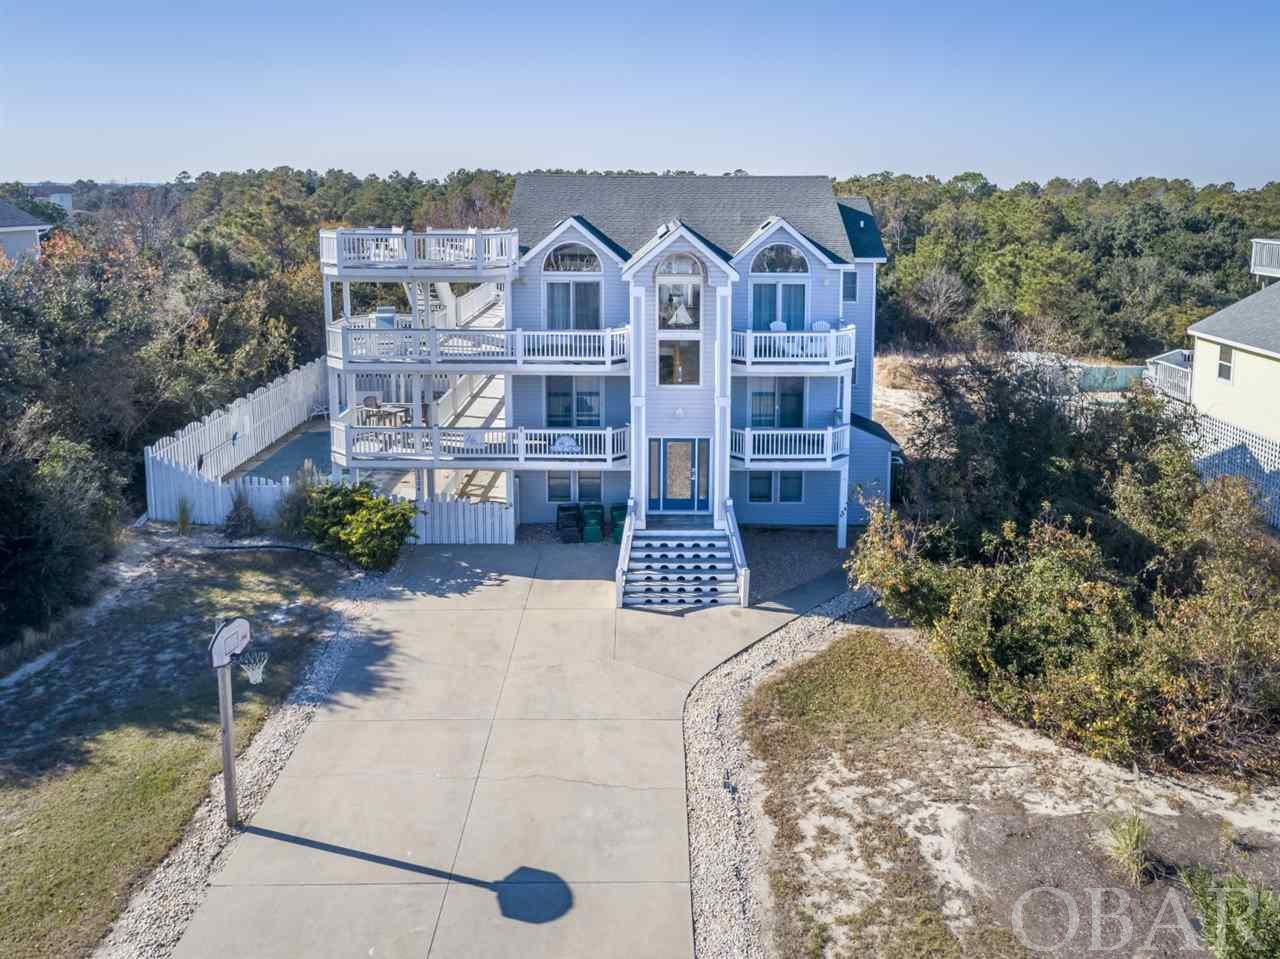 1004 Corolla Drive, Corolla, NC 27927, 8 Bedrooms Bedrooms, ,6 BathroomsBathrooms,Residential,For sale,Corolla Drive,102871